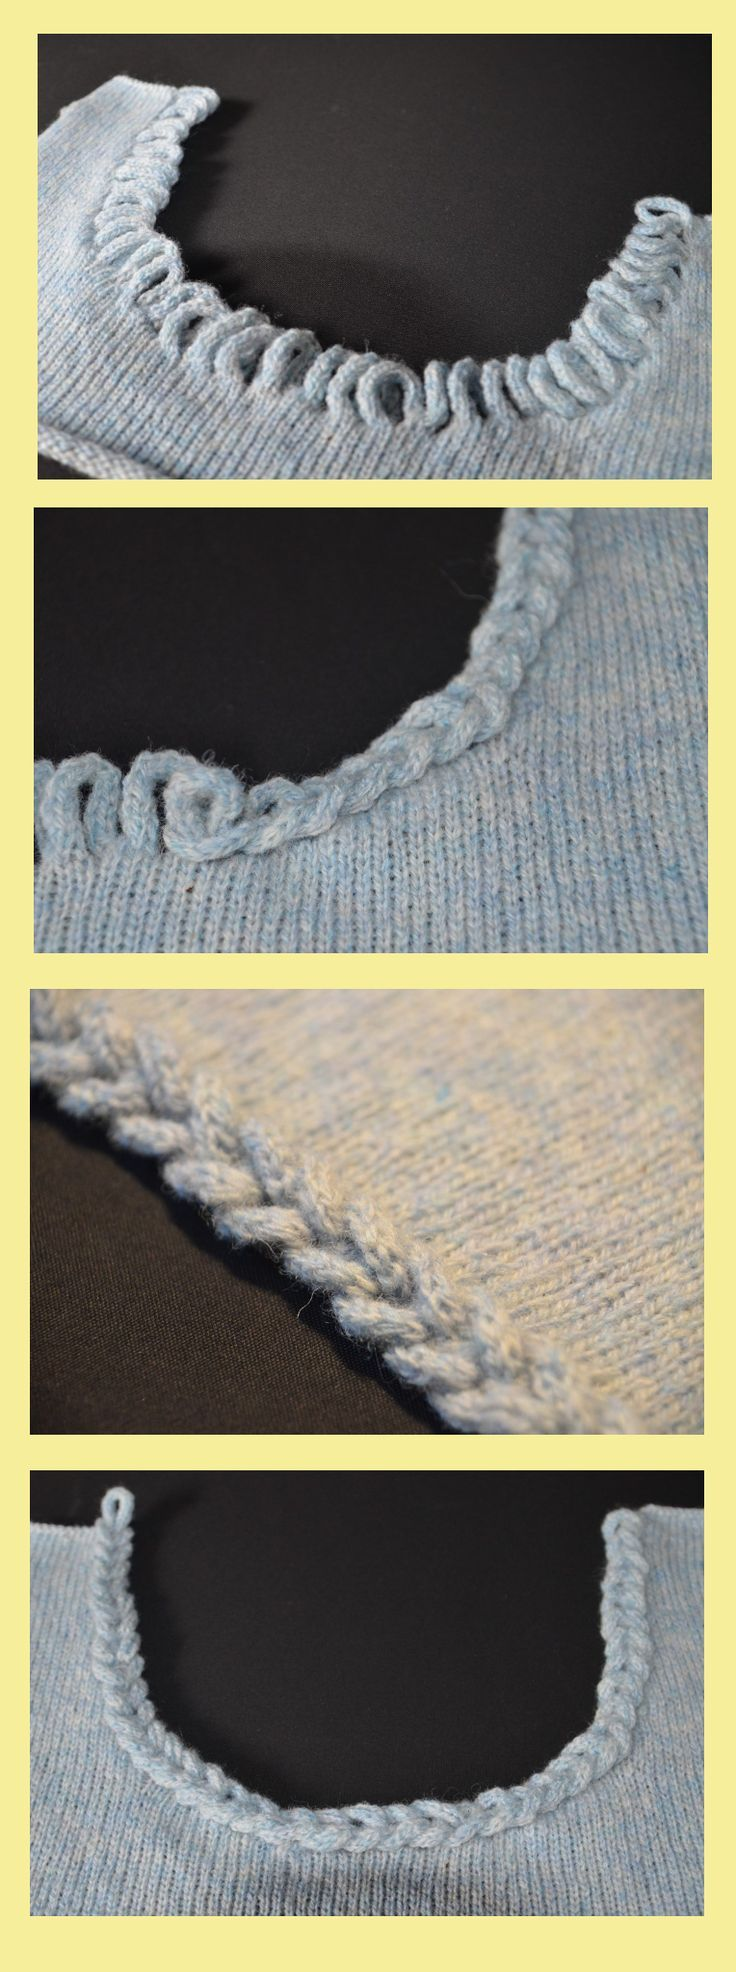 Braided neckline. Pick up 2 stitches, knit 16-20 rows, pick up the next 2 stitches